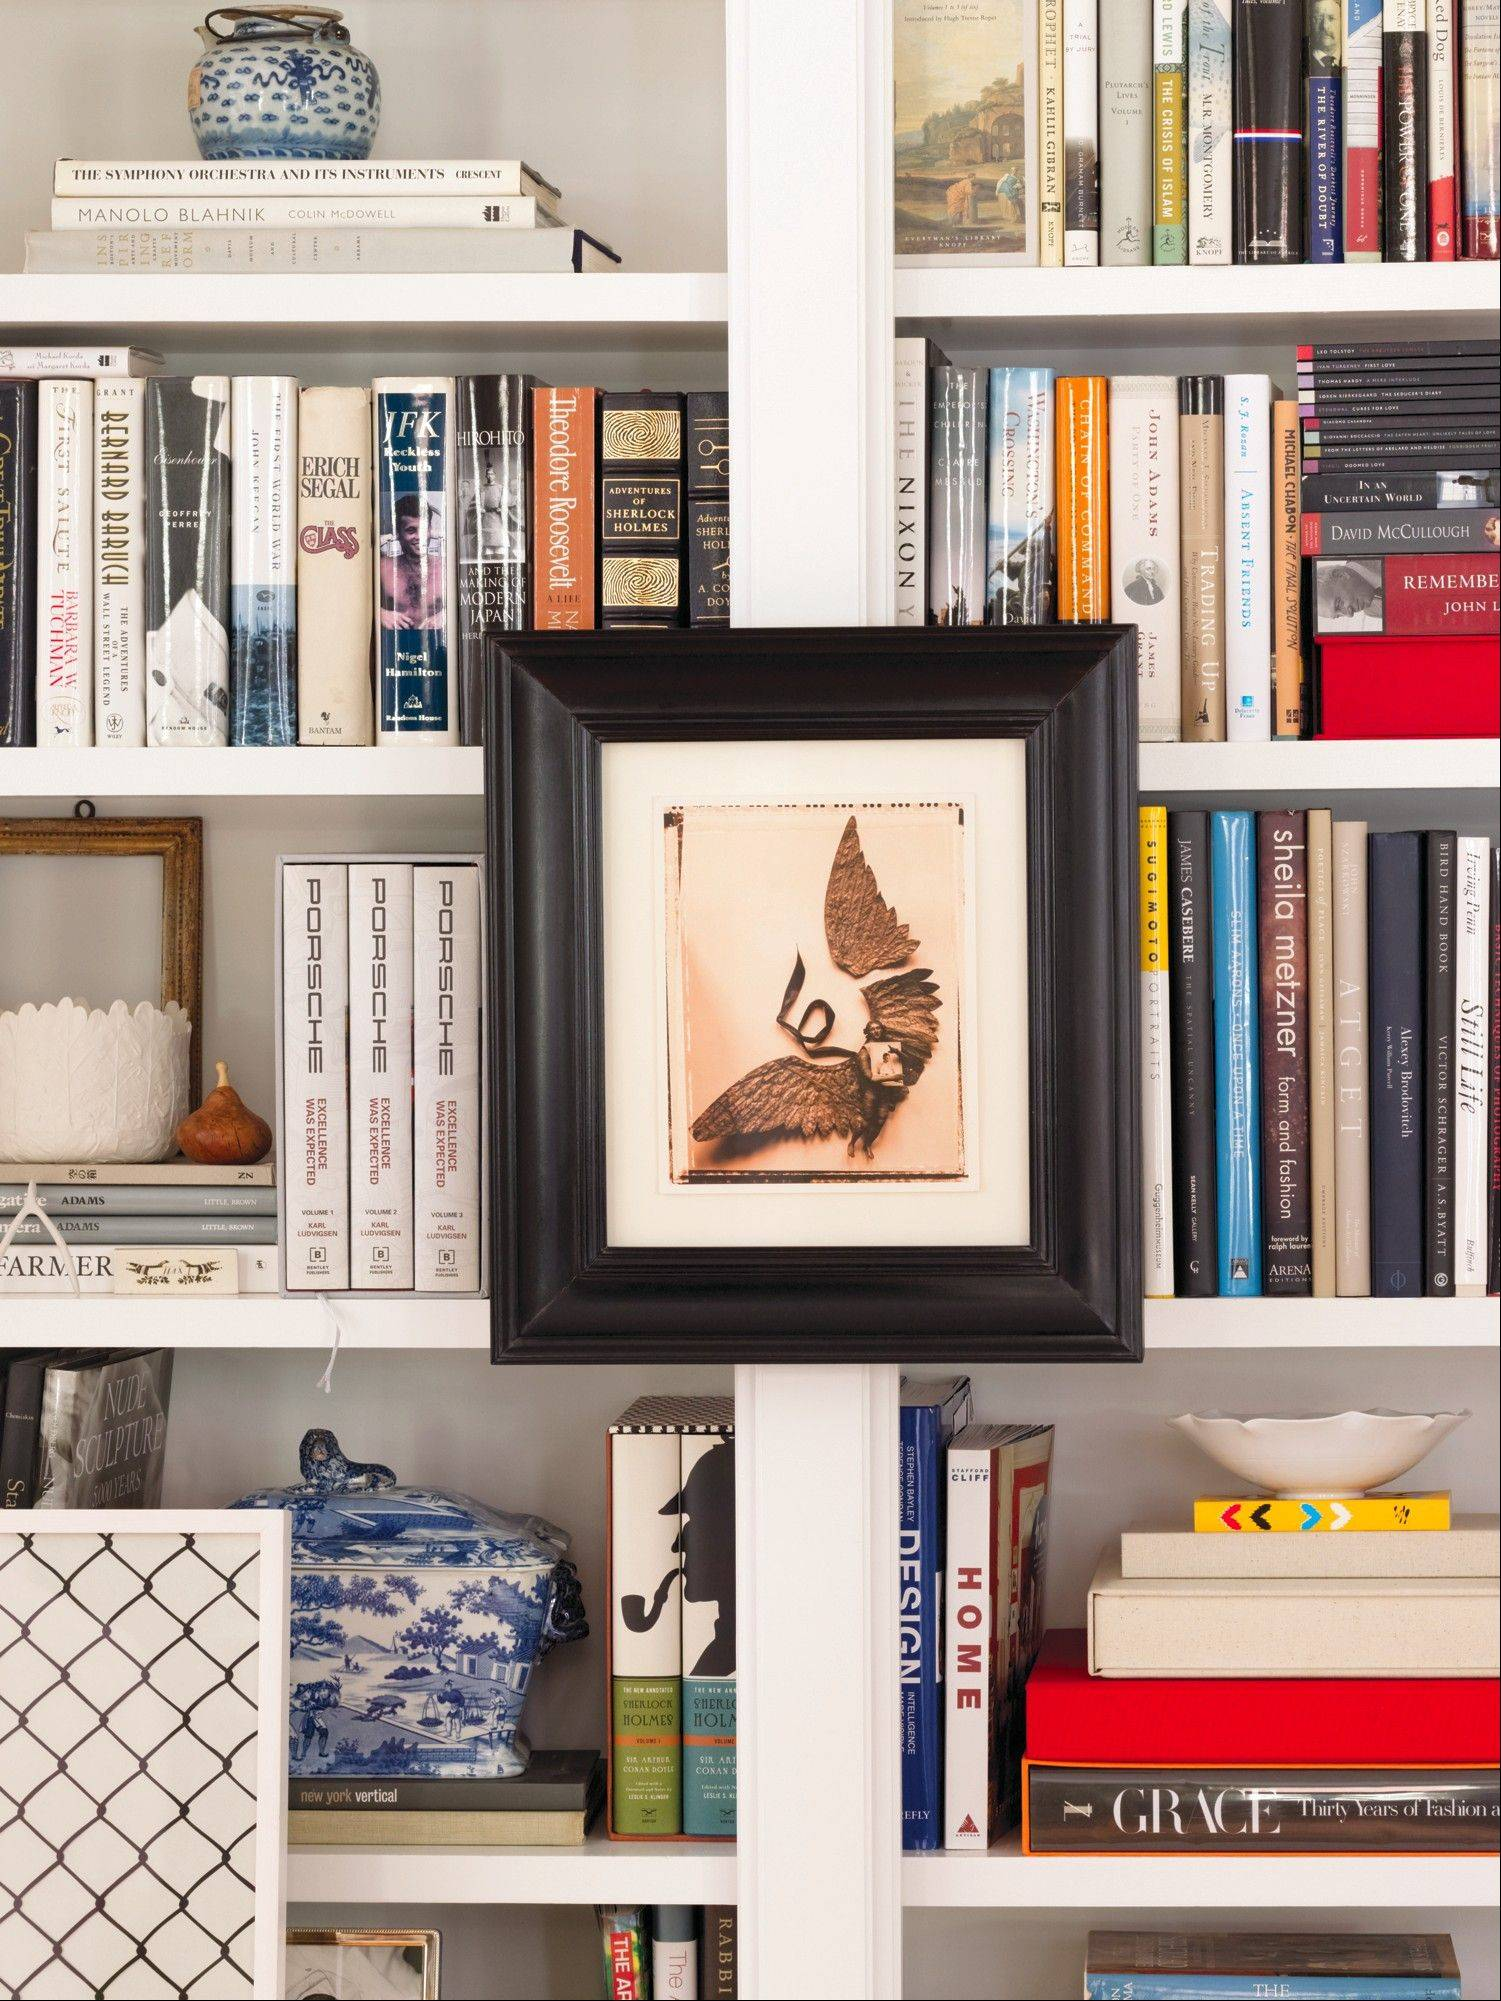 Artwork nicely complements the titles on Elizabeth Mayhew's bookshelves; photographs or ceramic objects can personalize a bookshelf.